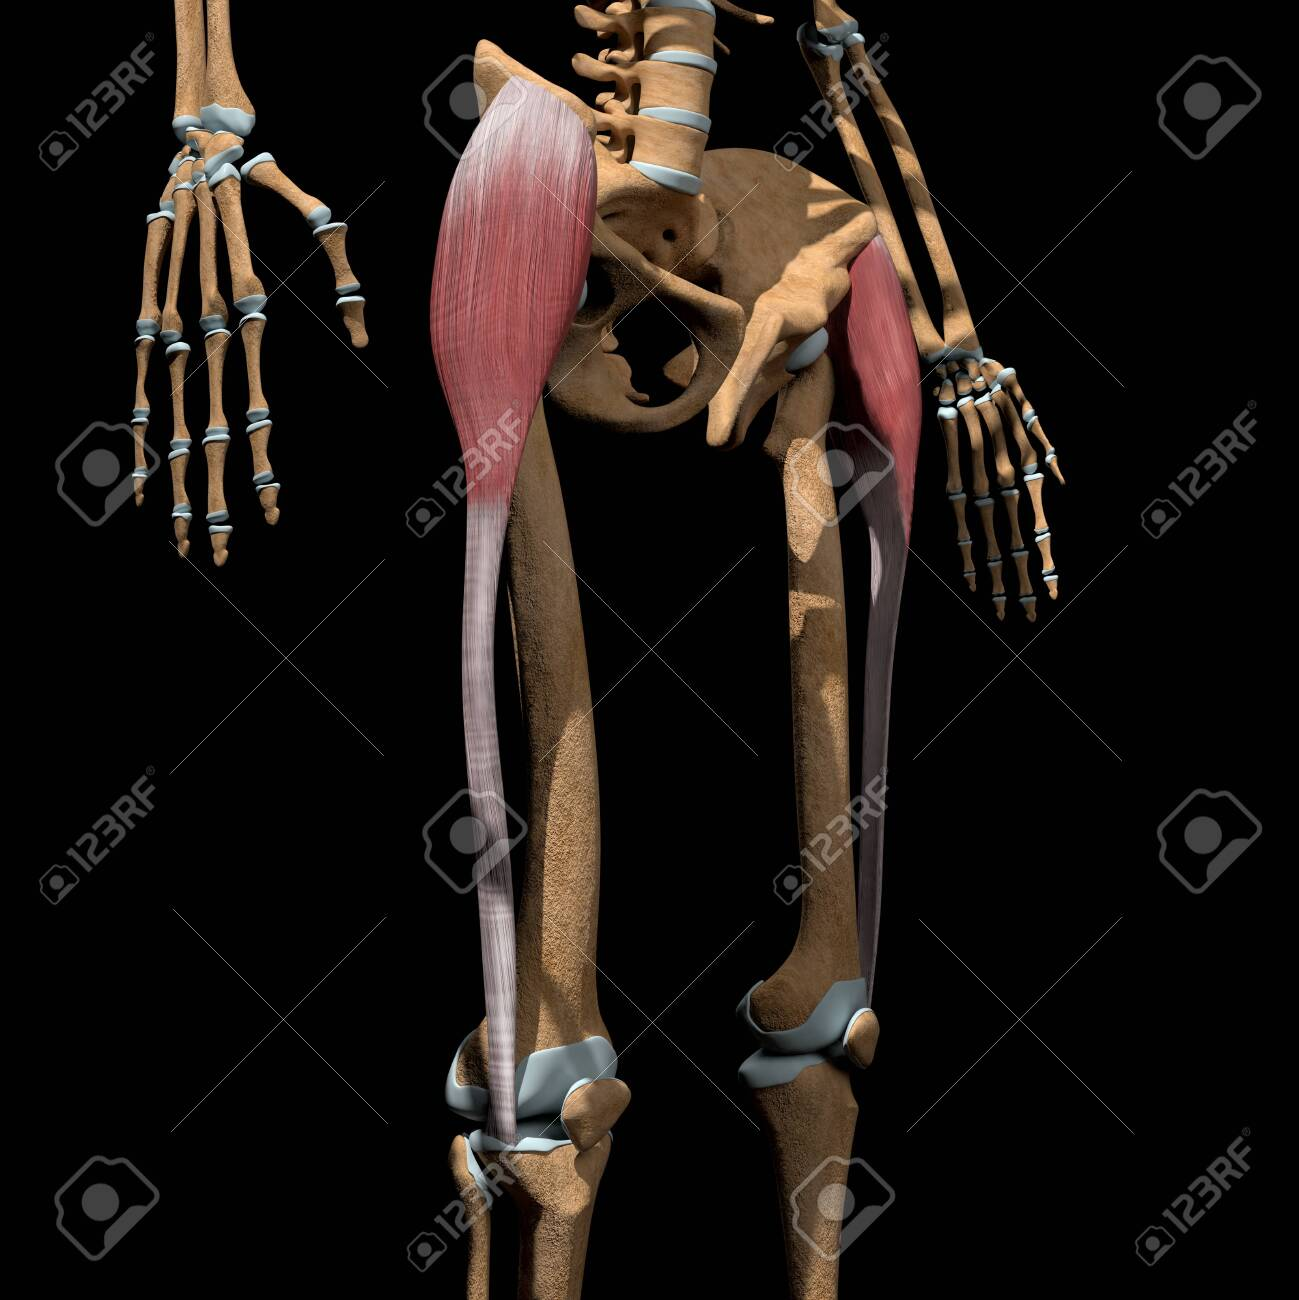 This 3d illustration shows the tensor fasciae latae muscles on skeleton - 142171668